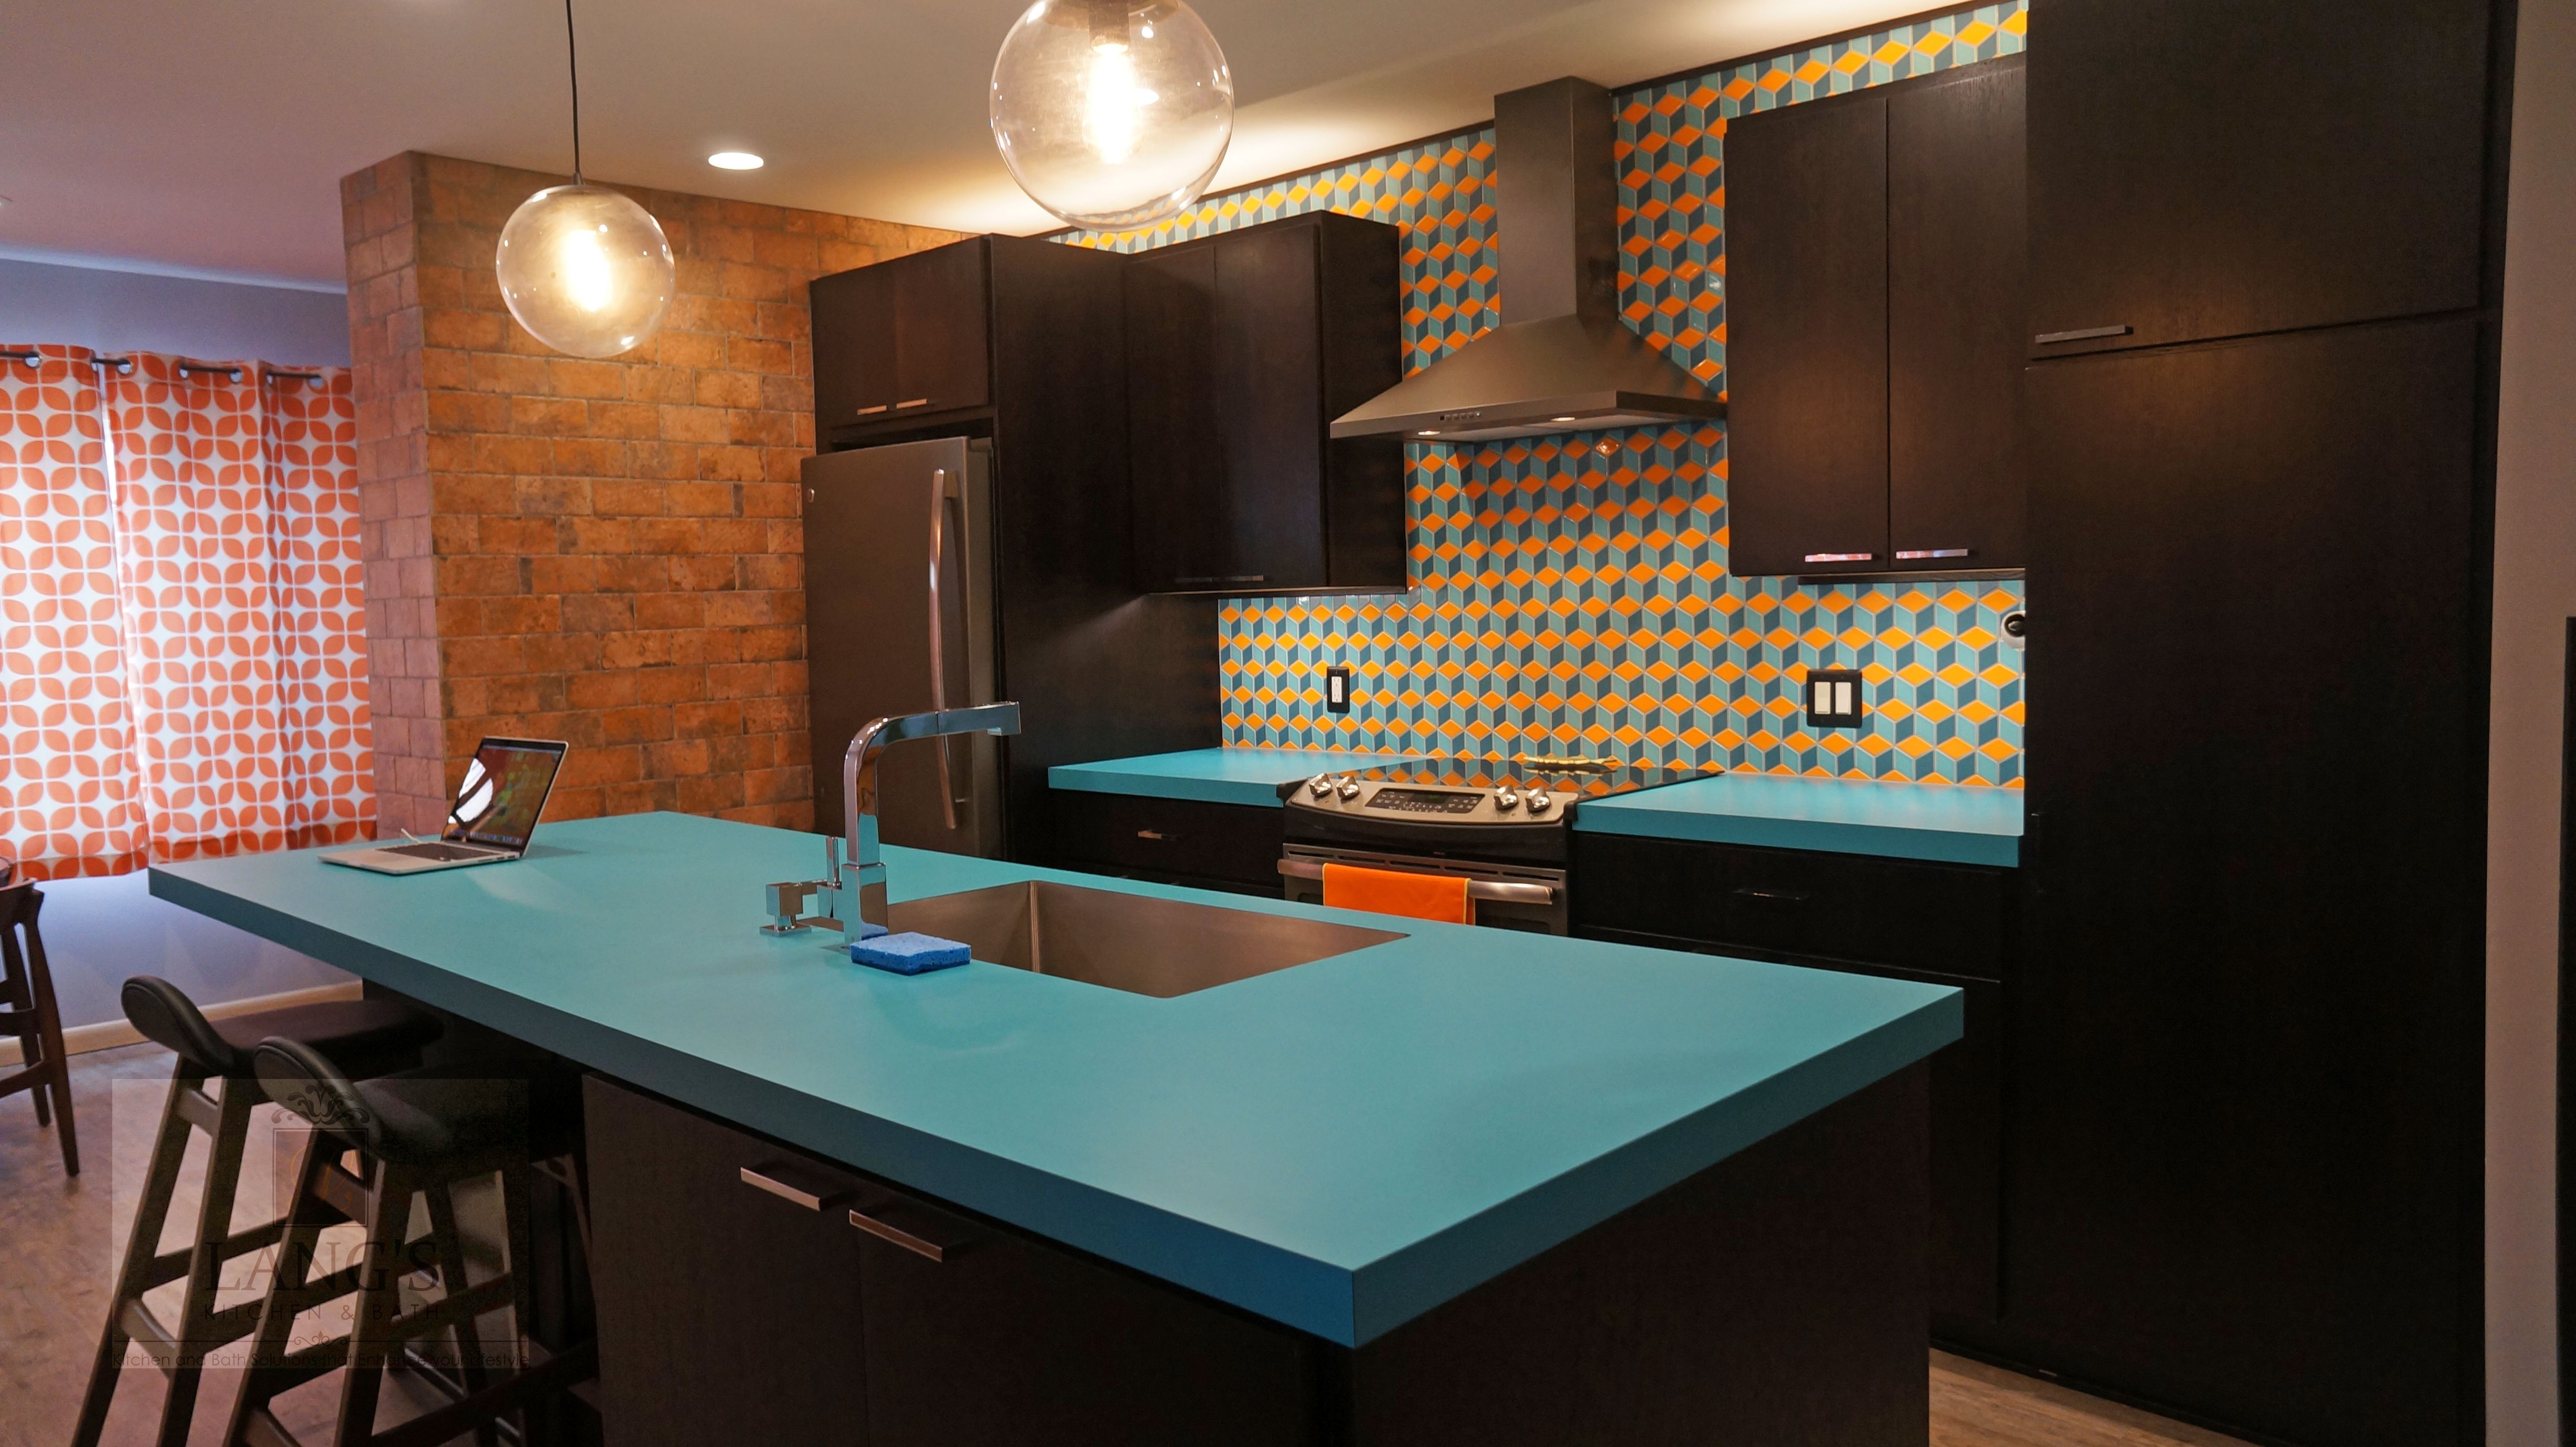 This dynamic KitchenDesign is oneofakind with a blue